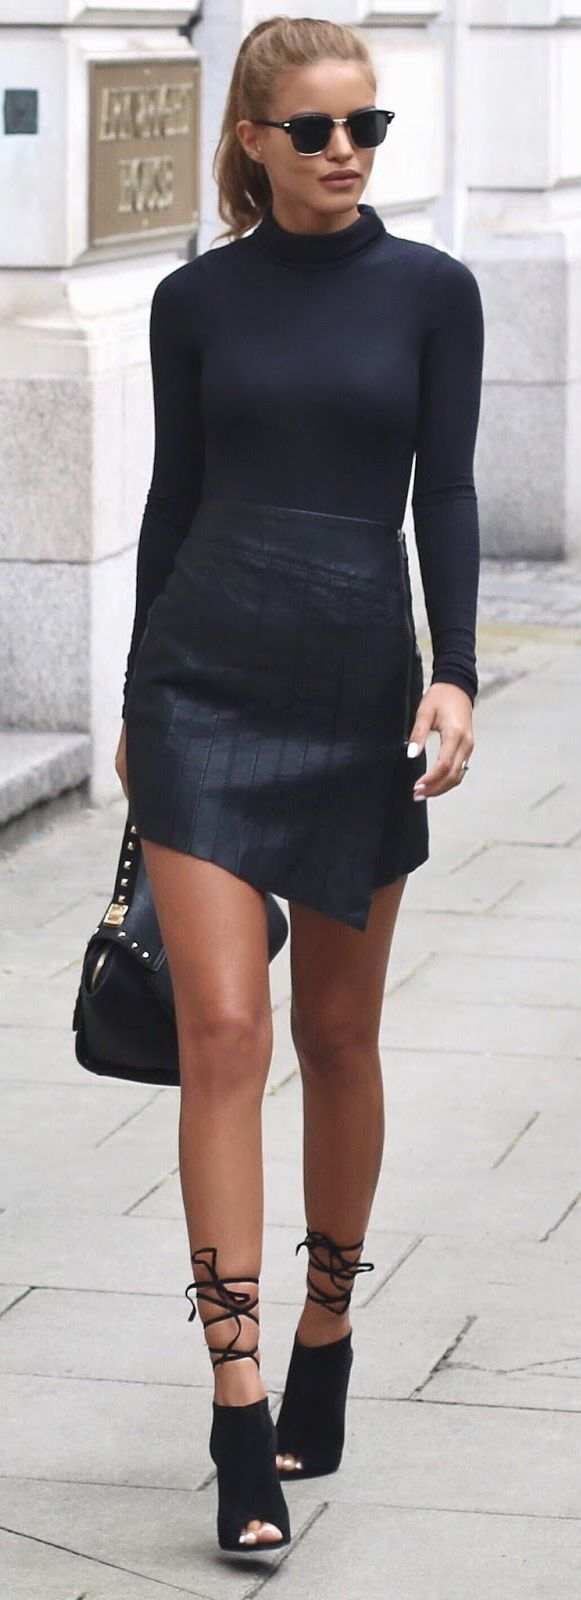 Ribbed Turtle Neck - Boohoo Leather Zip Skirt - Ankle Boot Heels - Public Desire - Gold Studded Bag - La Moda